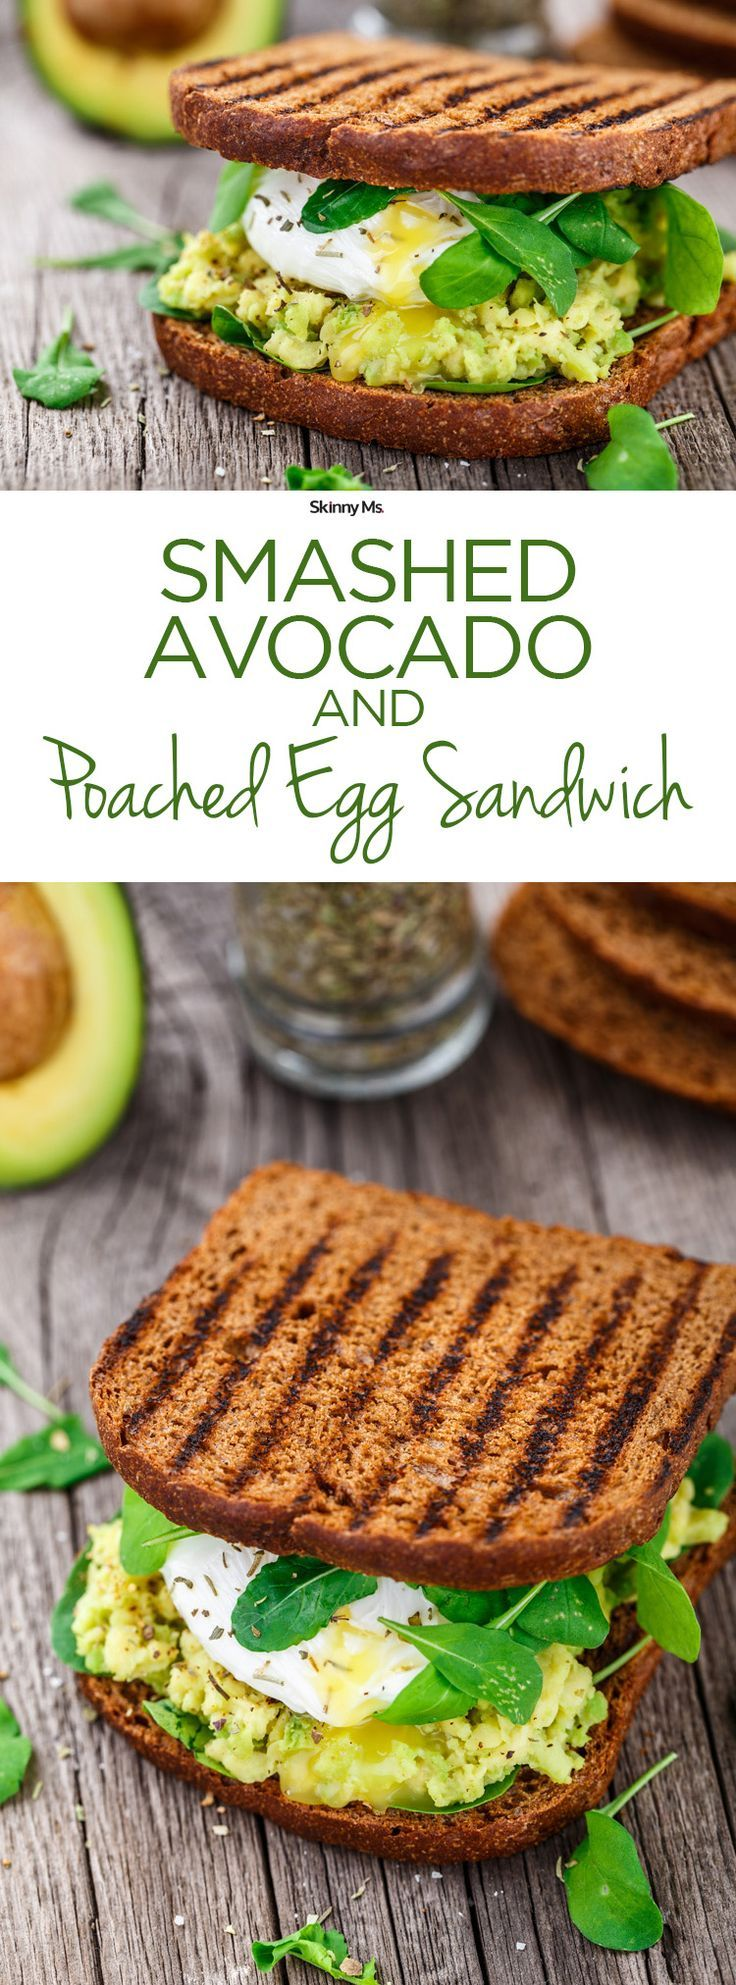 The power sandwich packs a bunch of tasty flavors and textures. Just one bite will turn you into a morning person!